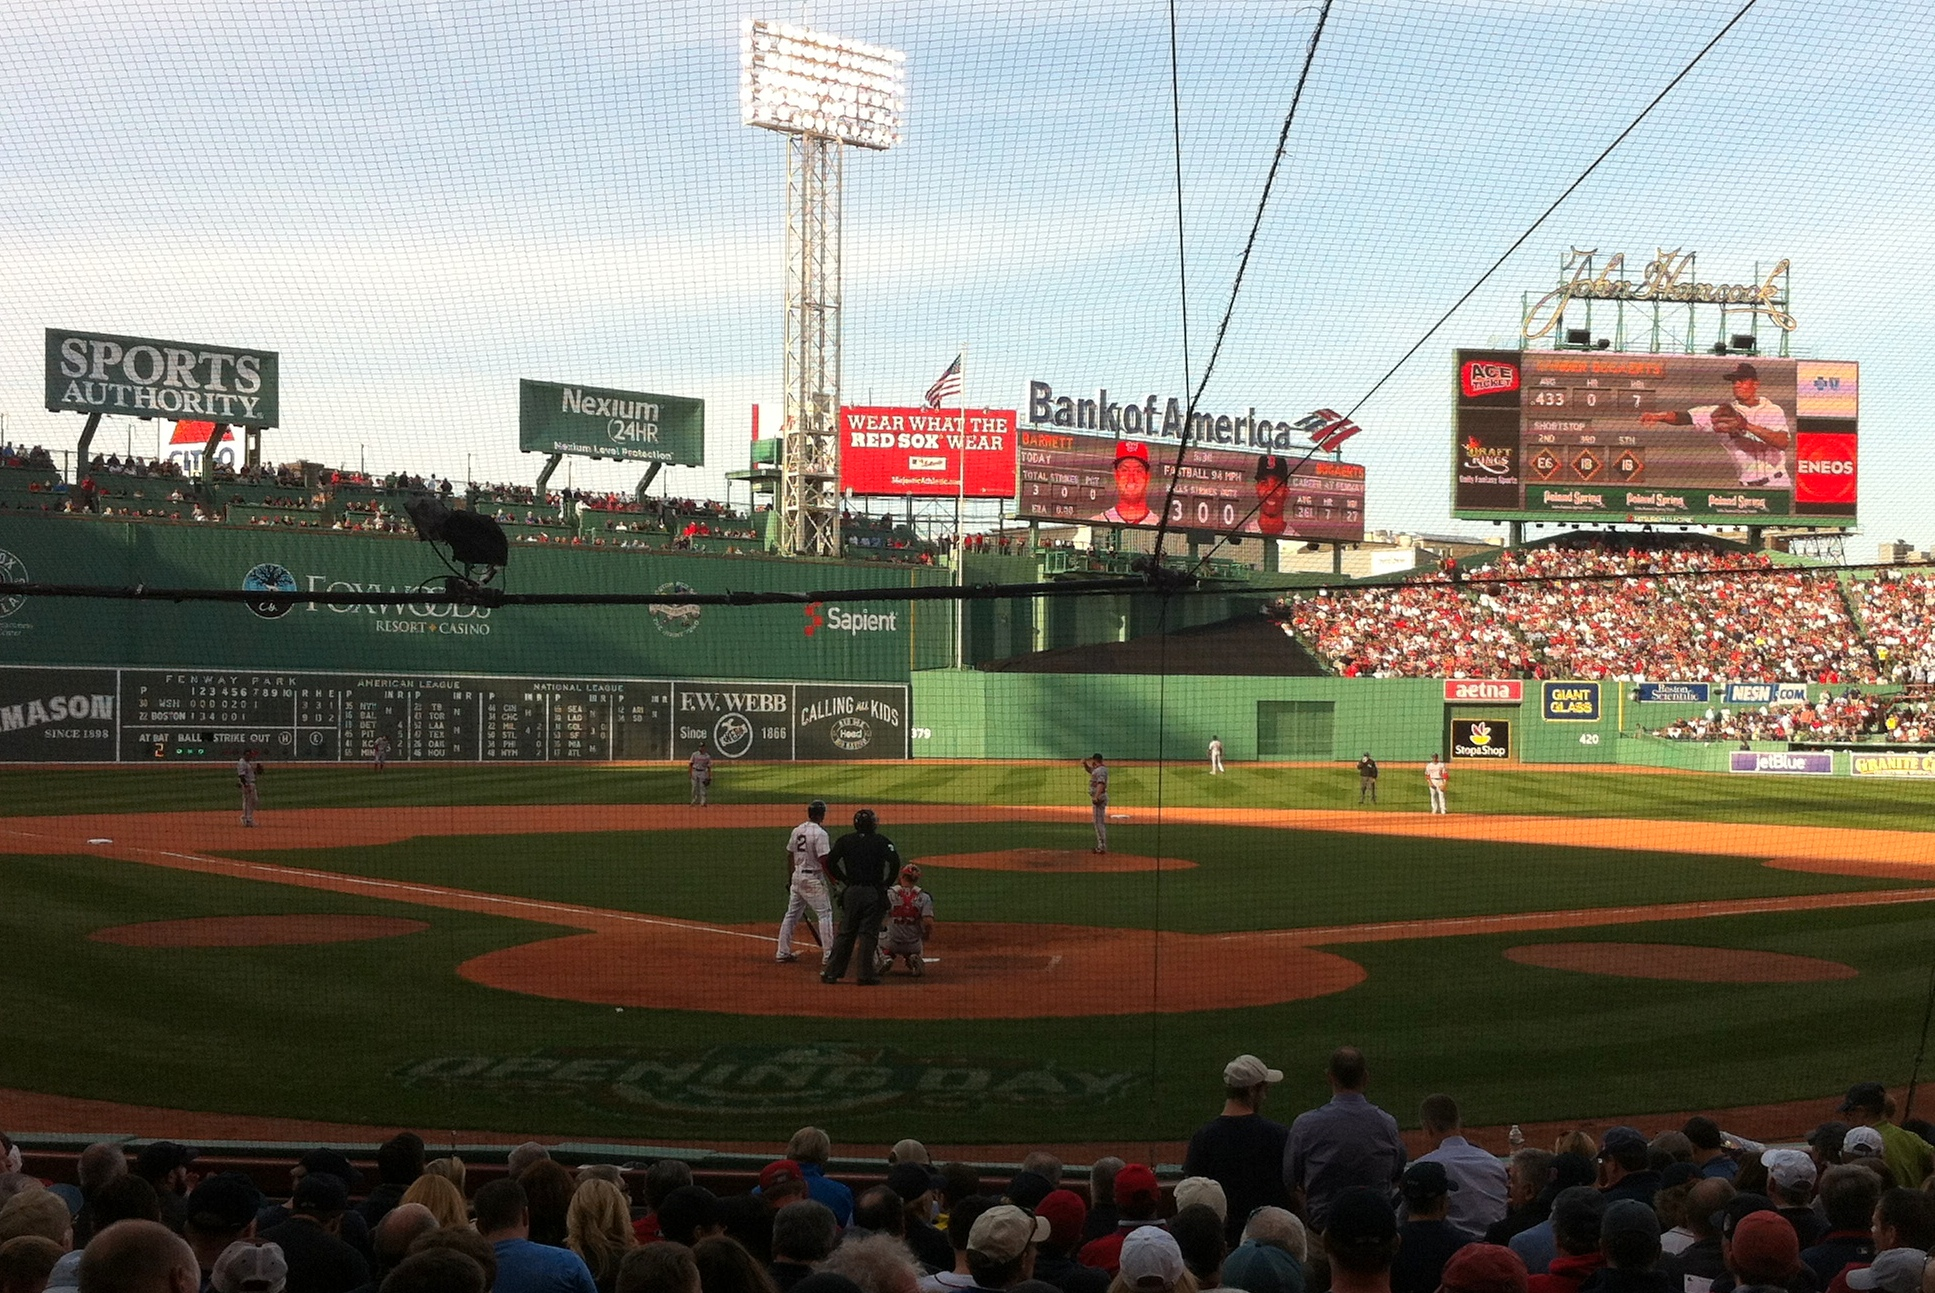 Field of Dreams at Fenway Park in Boston